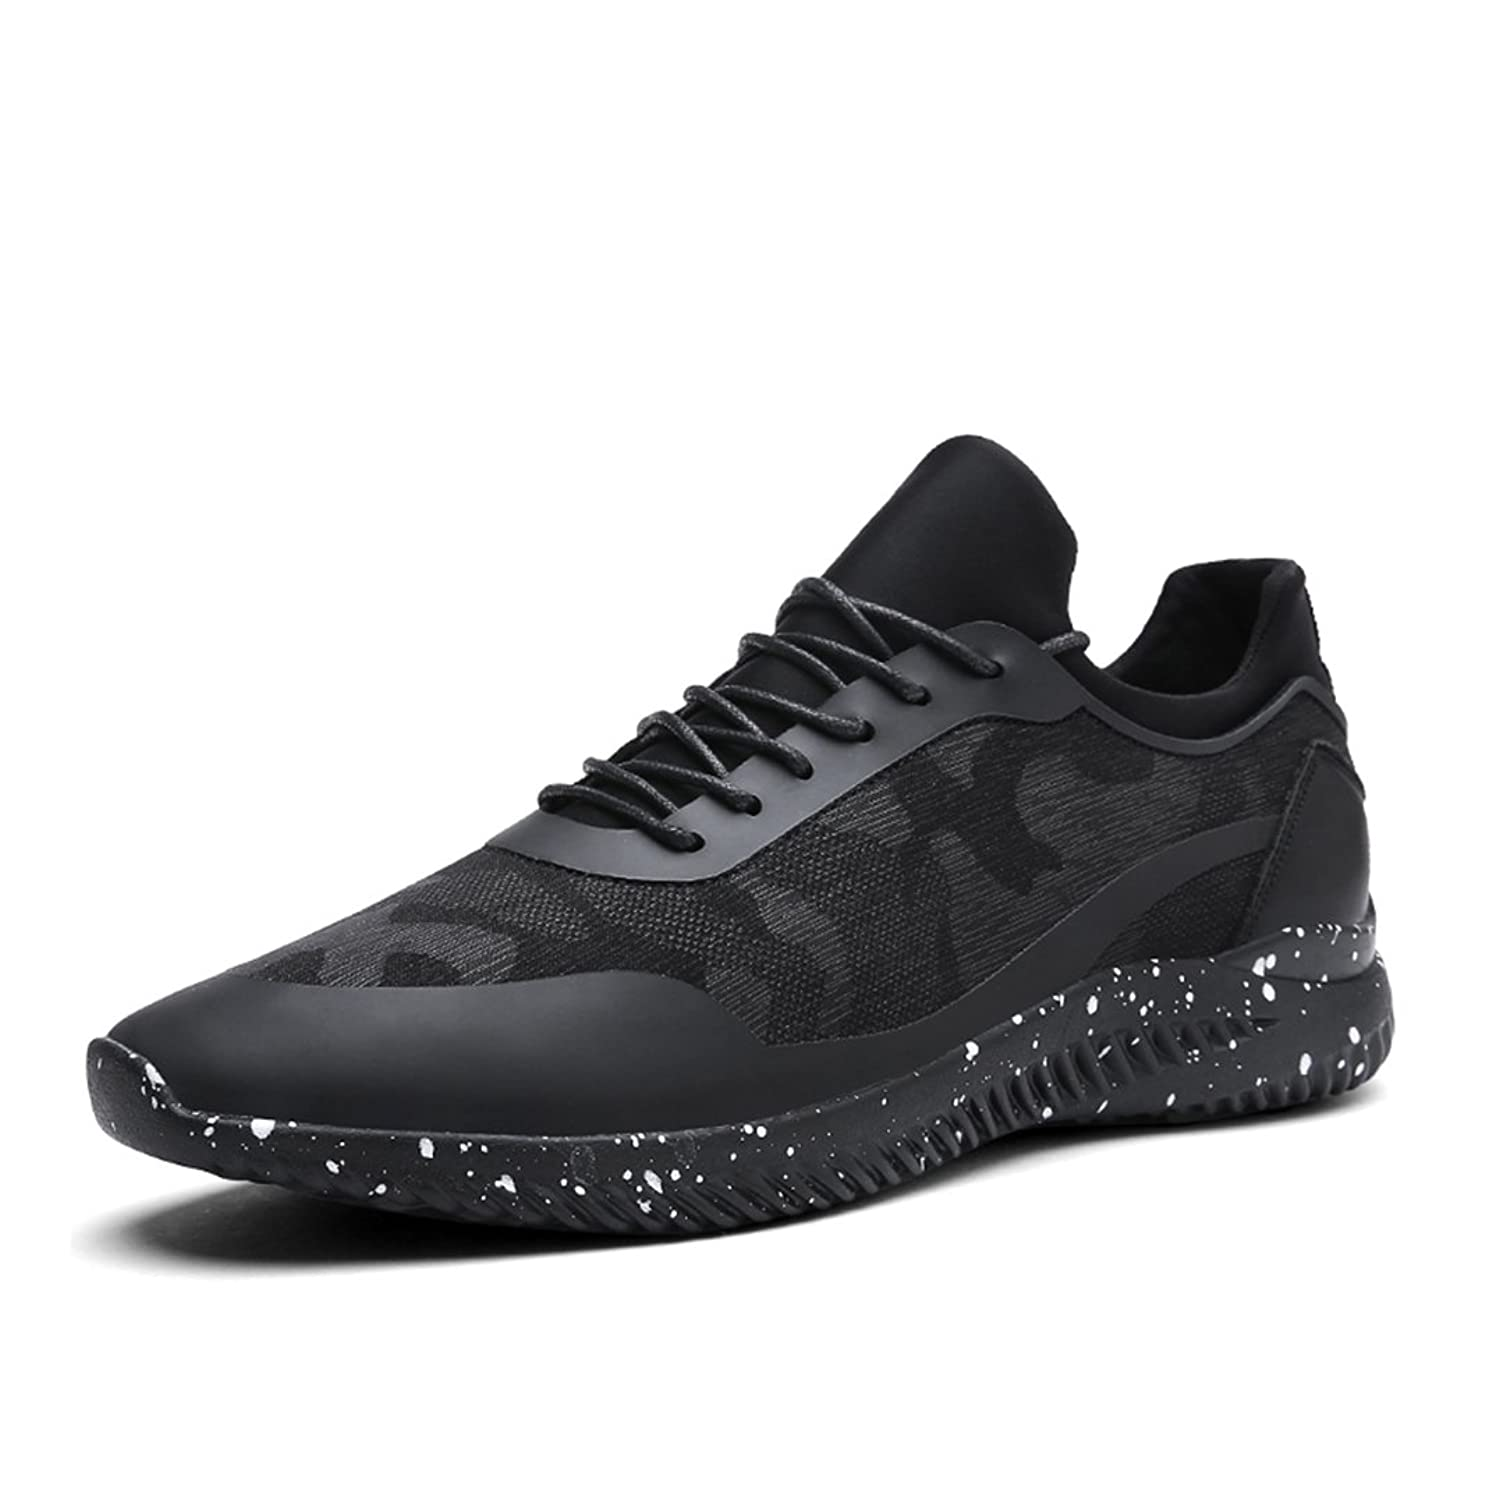 Shoes Spring Mens Casual Shoes Outdoor Exercise Sneakers Breathable Comfort Running Shoes Black (Color : Black Size : 39)